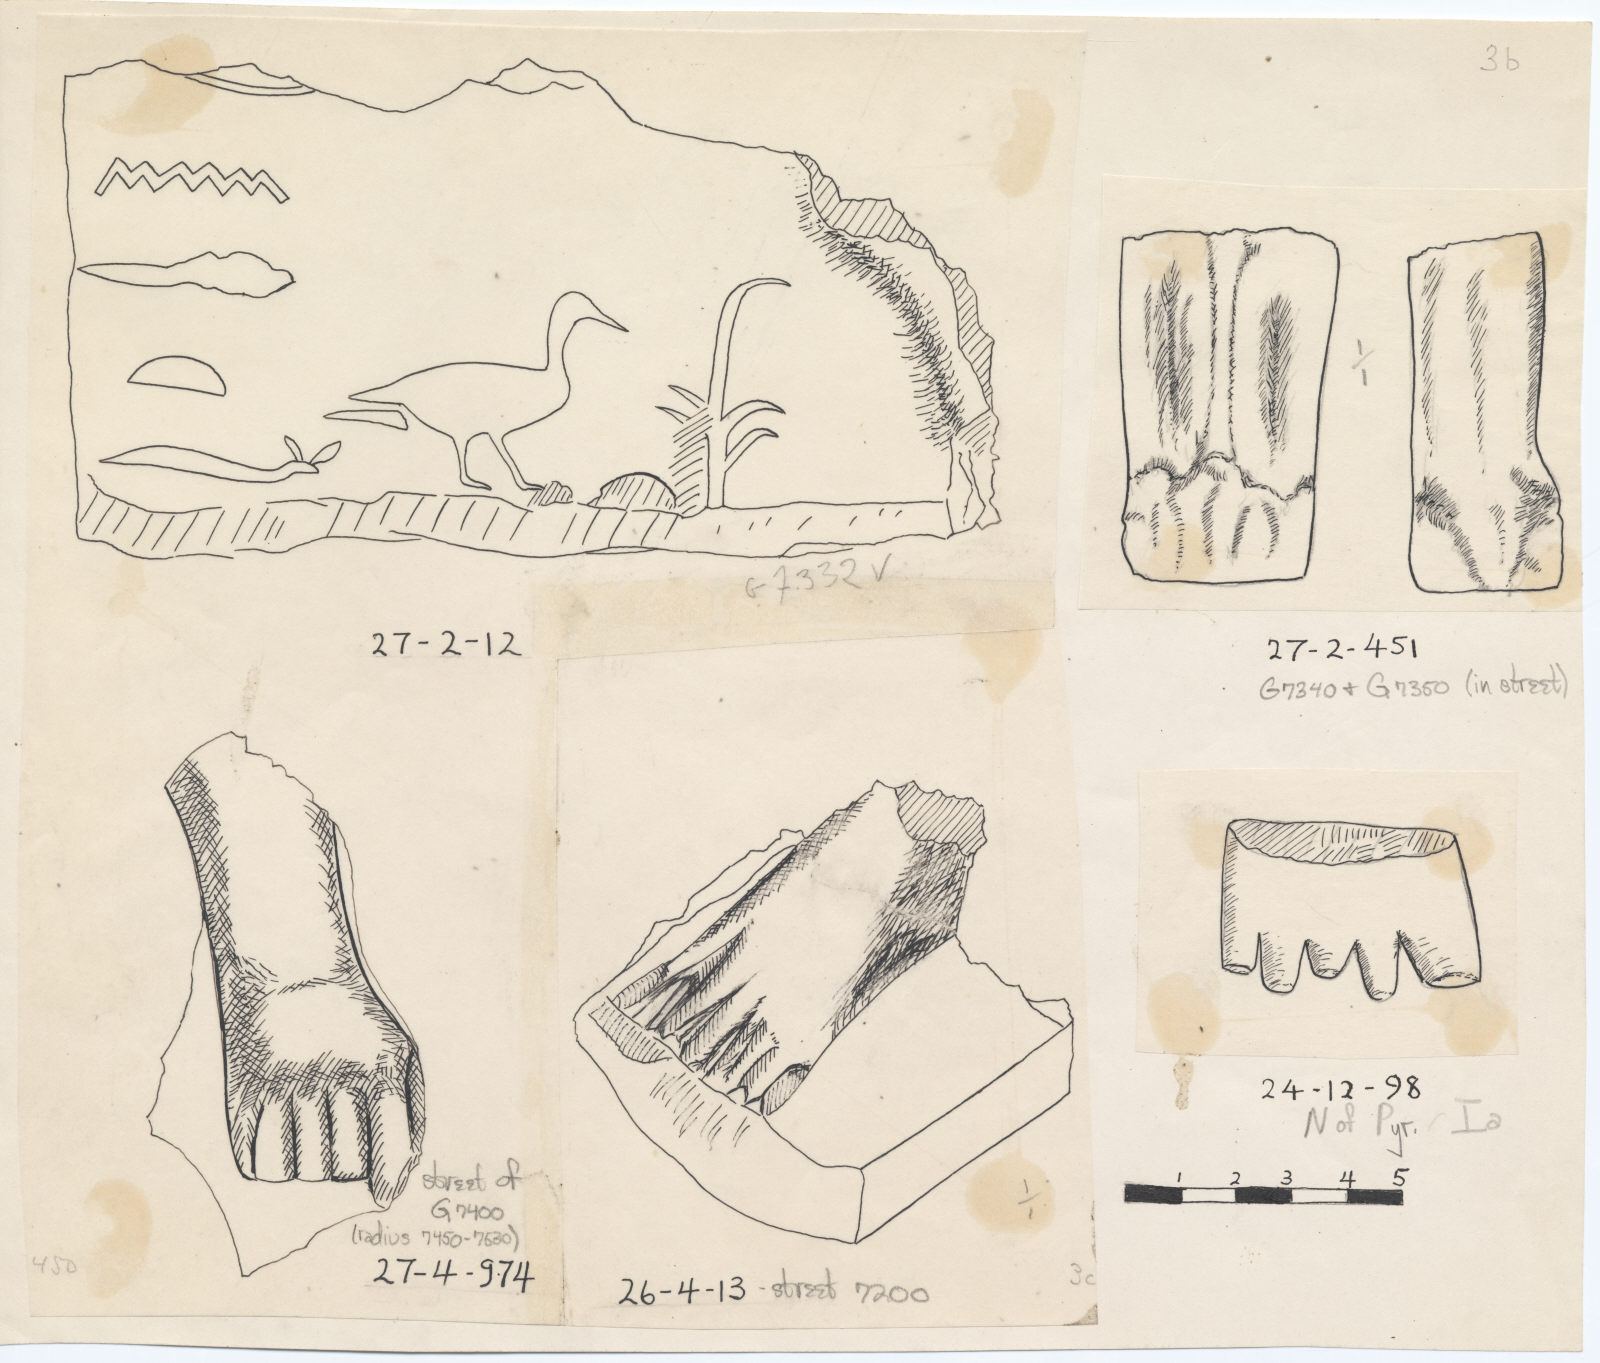 Drawings: Fragments of statues from G 7332 V, G 7340, and G 7350, Street 7200, Street 7400, and N of G I-a